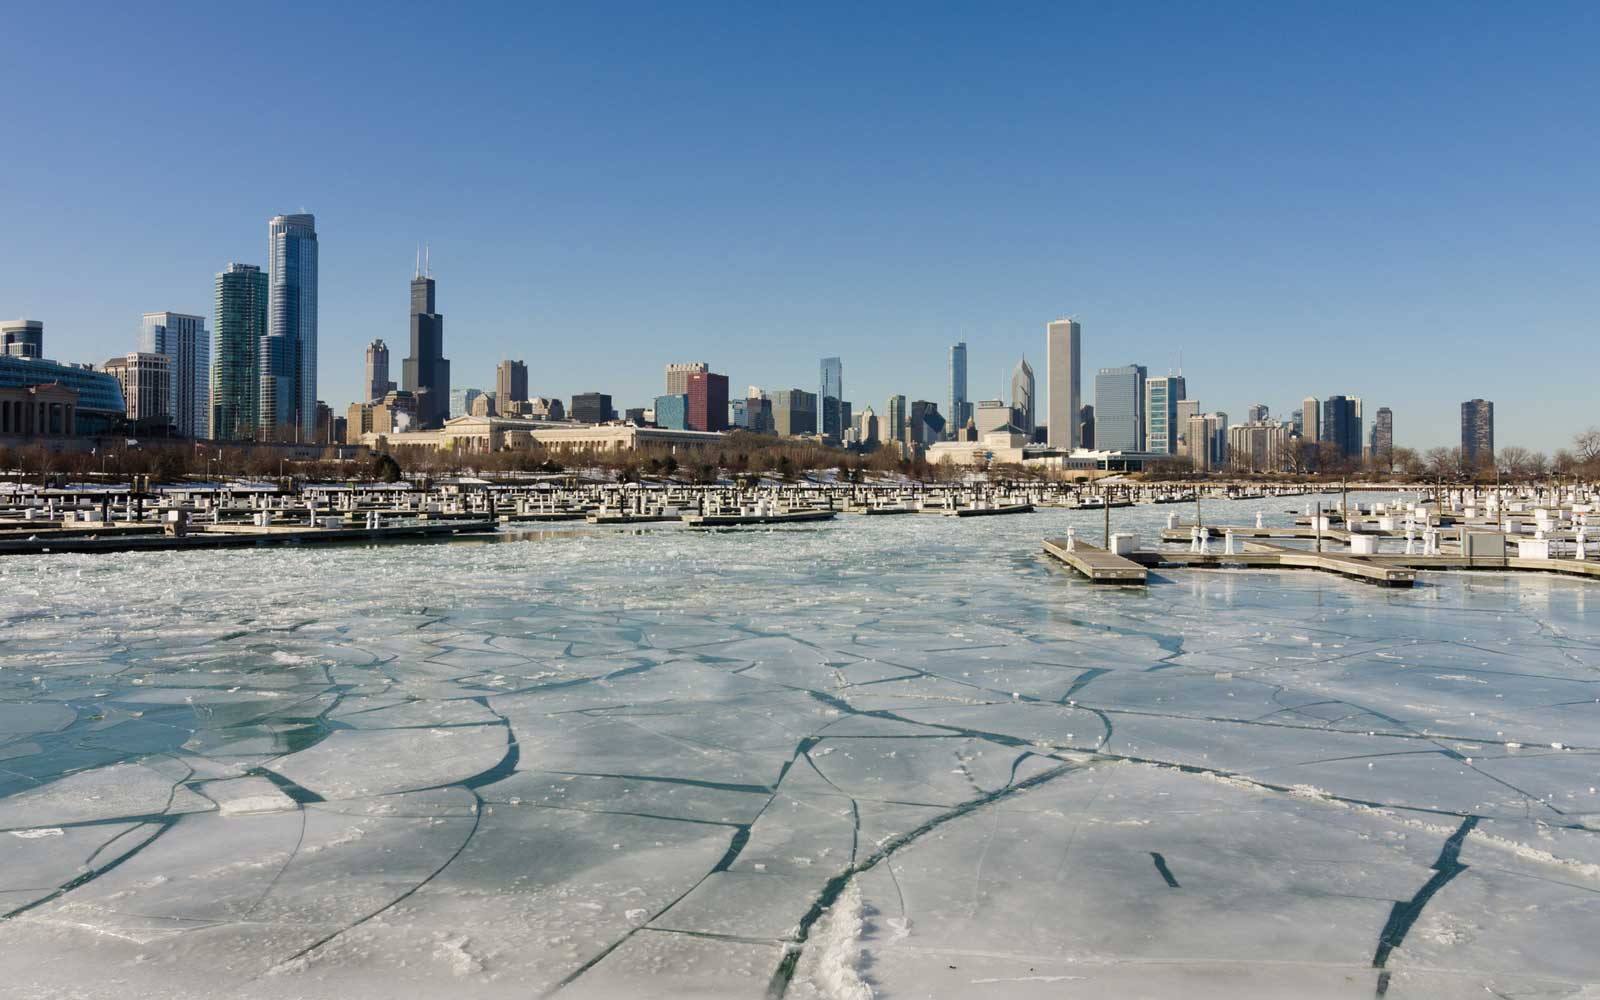 Cold, Chicago Winter